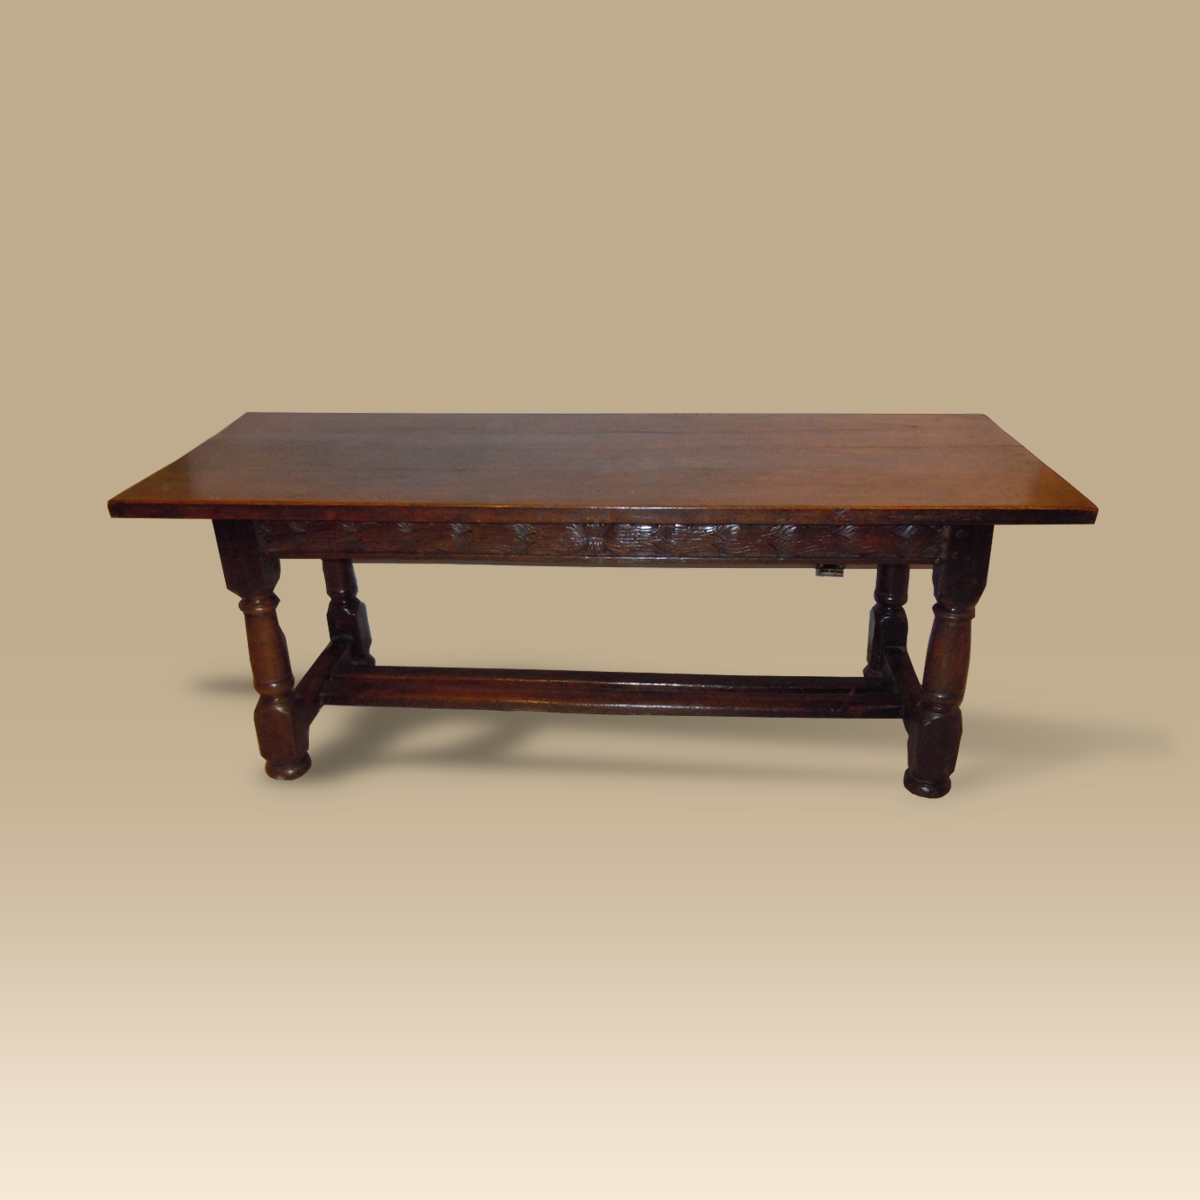 A Mid 17th Century Oak Refectory Table